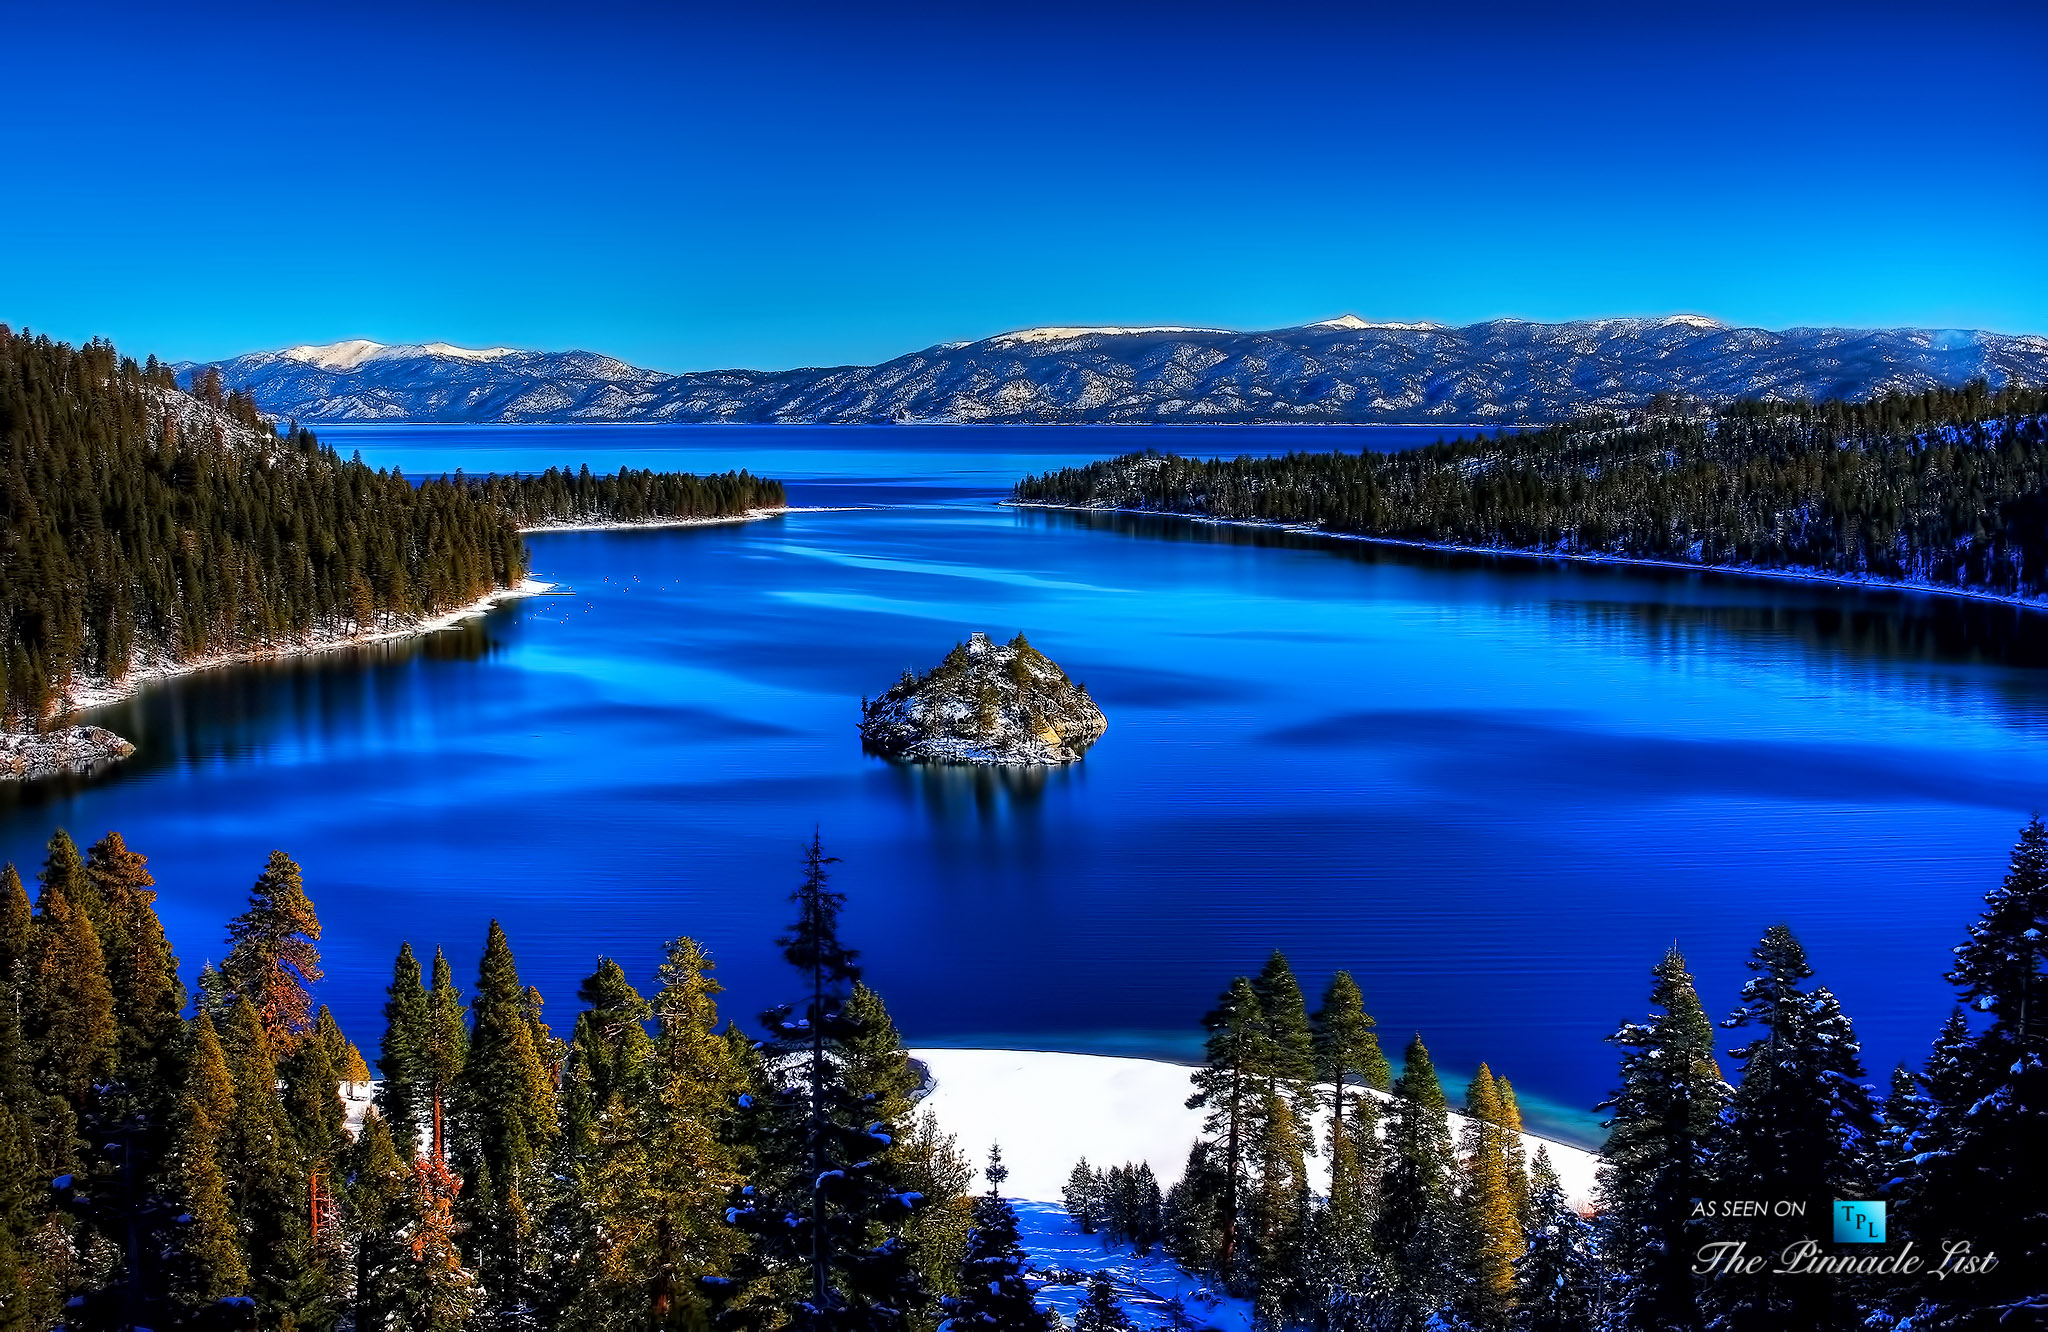 Winter - Expect Snow, and Lots of It - Elevating Nuptials to a Higher Level - A Picturesque Lake Tahoe Wedding for Every Season